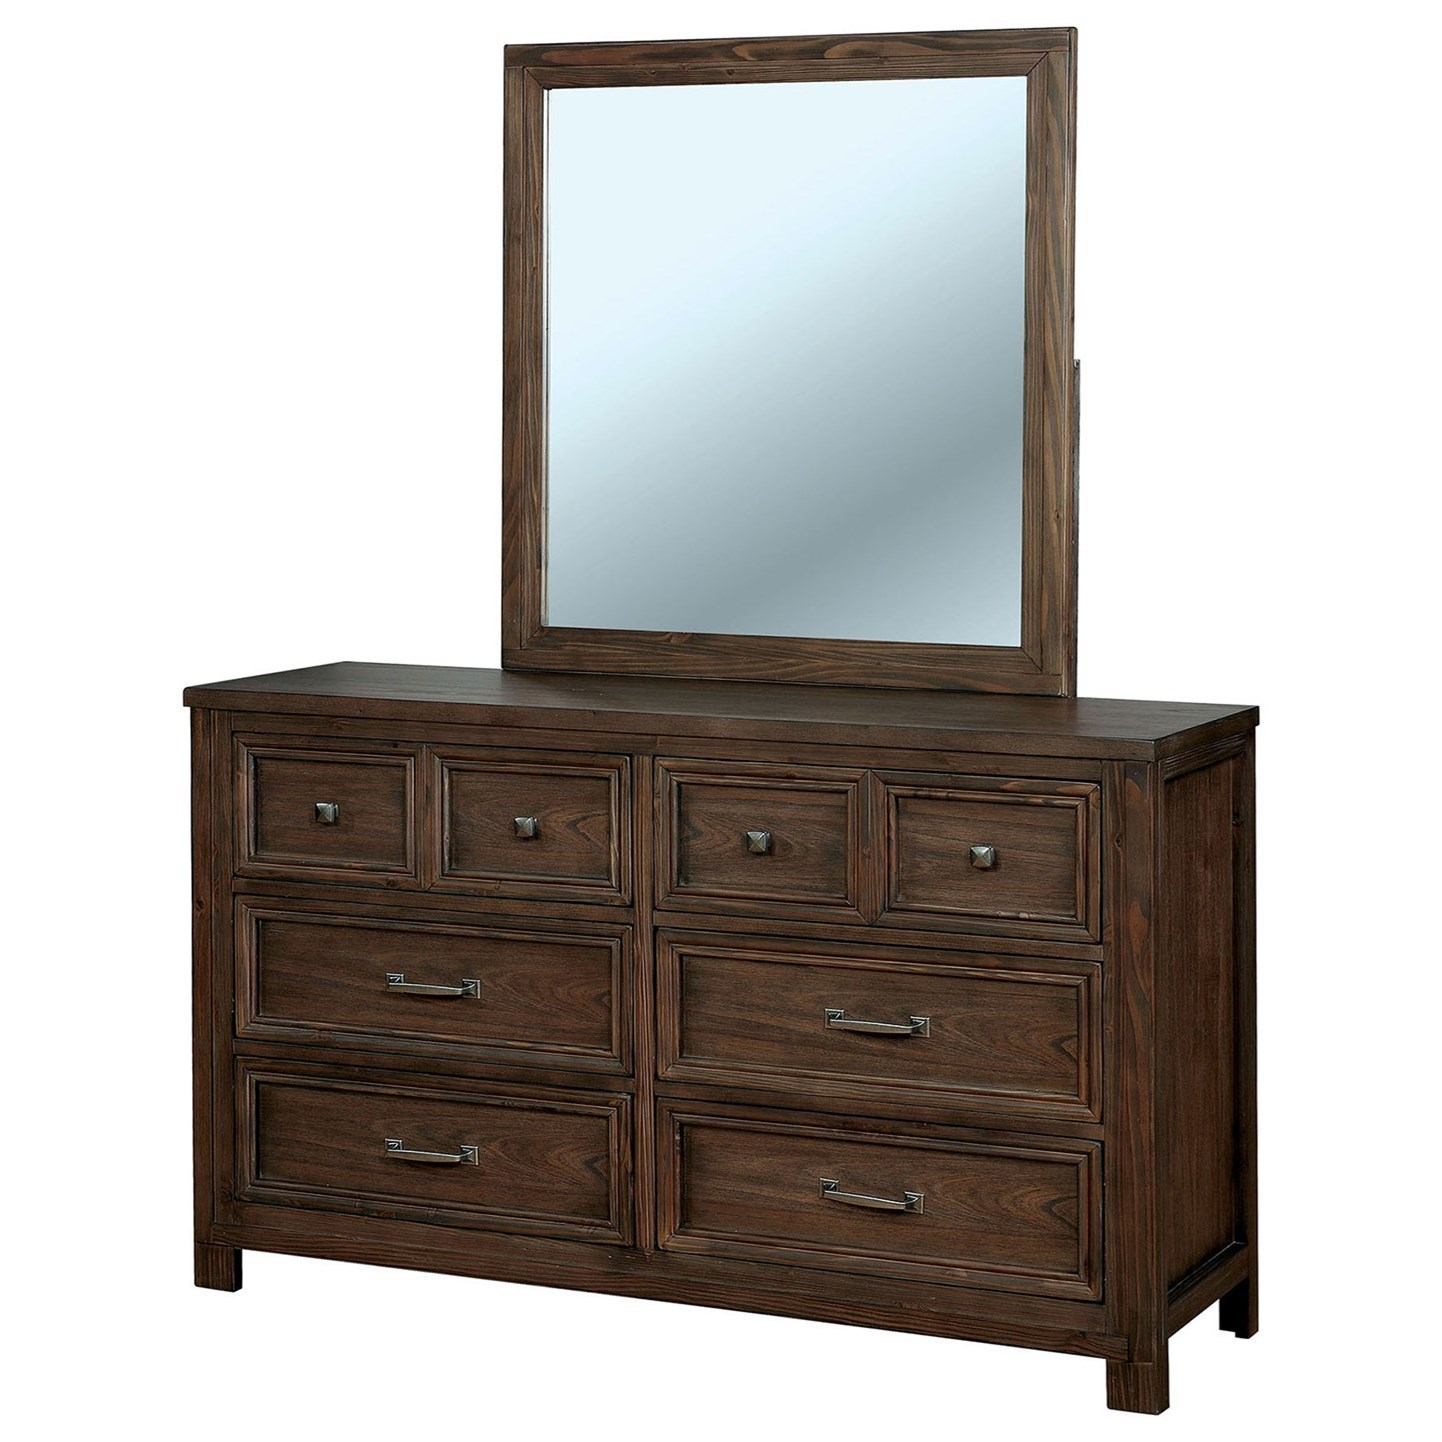 Tywyn Dresser and Mirror Combination at Household Furniture